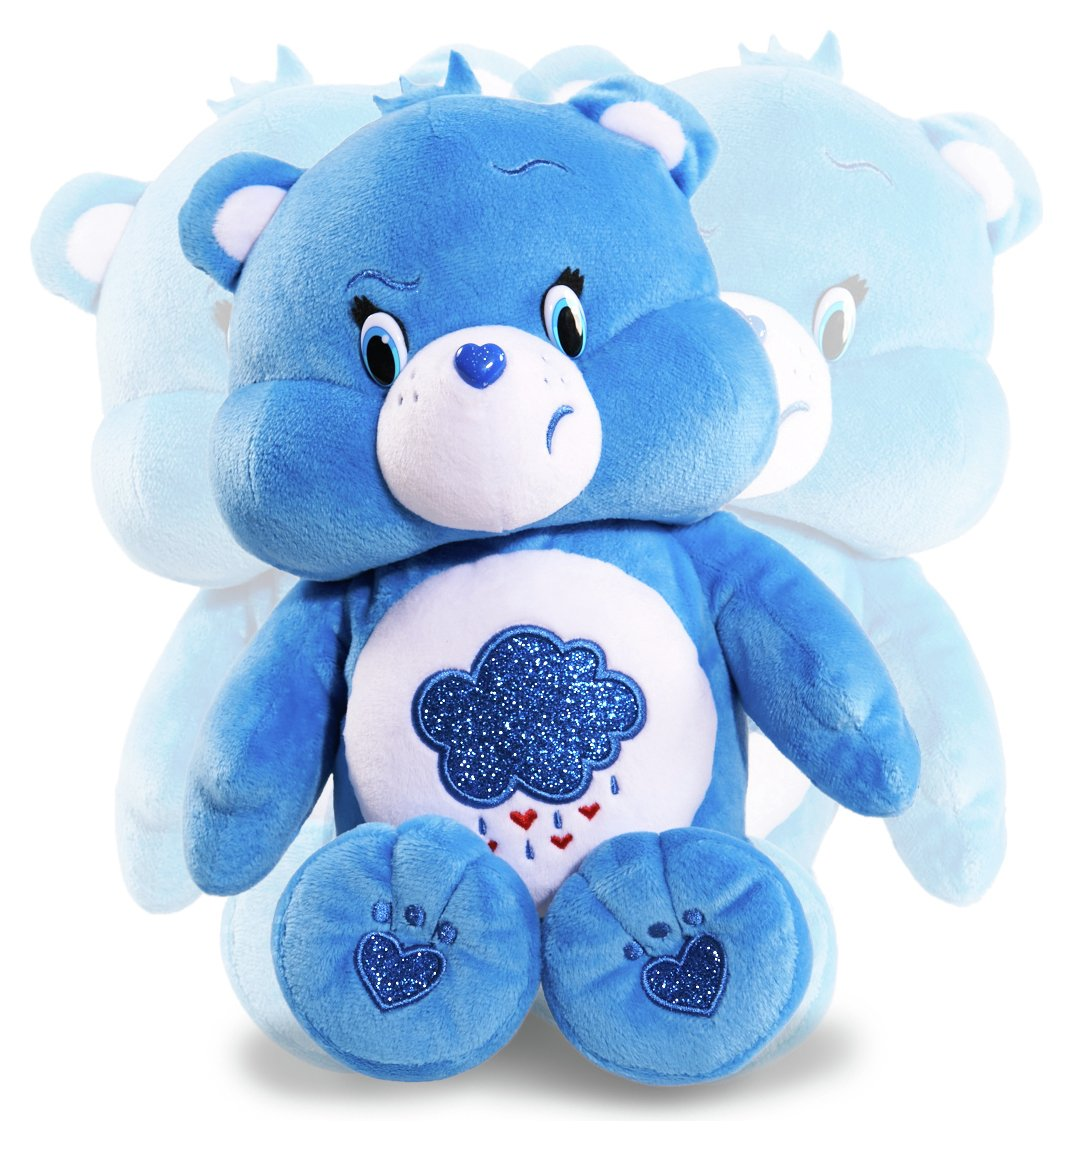 Care Bears - Sing-a-Long Grumpy Bear